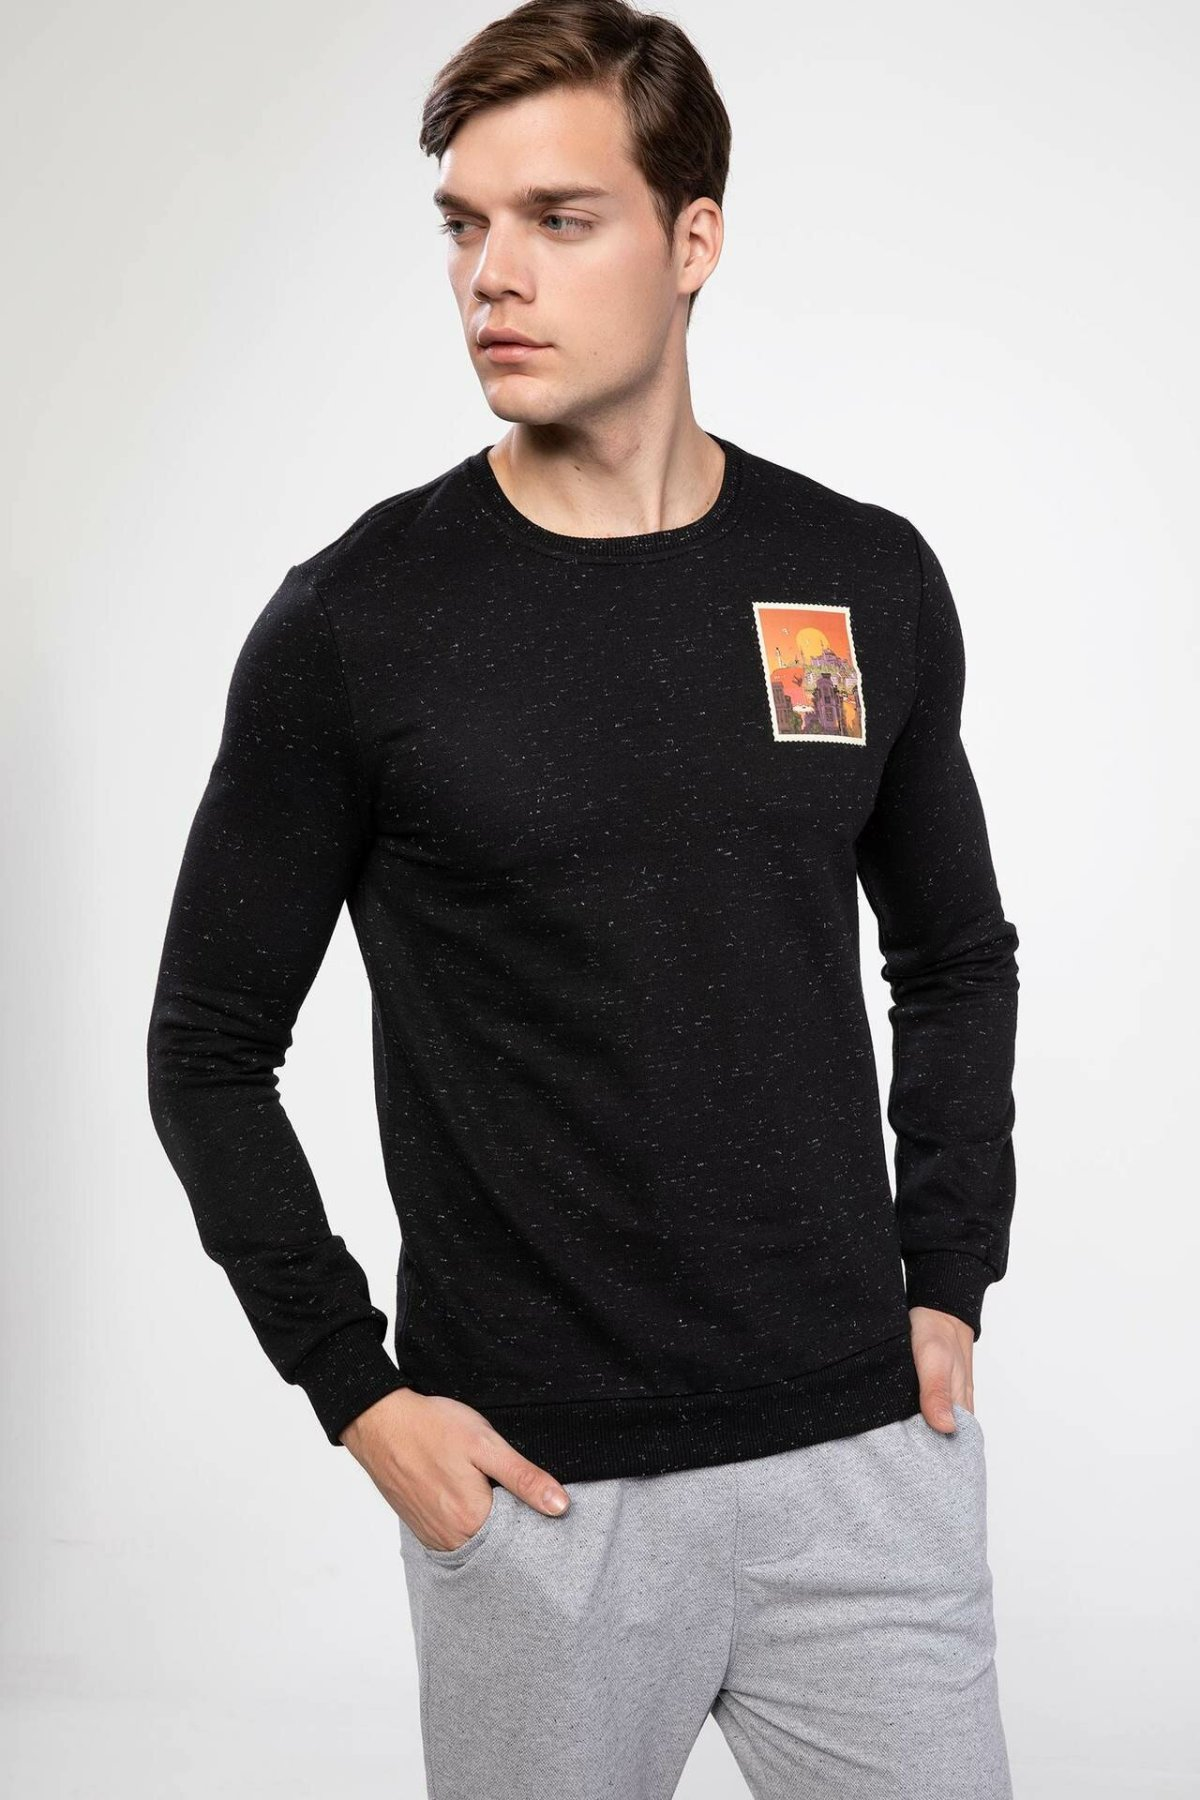 DeFacto Man Stamp Print Black Cotton Top Tees Men's Casual Loose Long Sleeve Knitted Tops Male Top Cloth T-Shirt-J3205AZ18AU